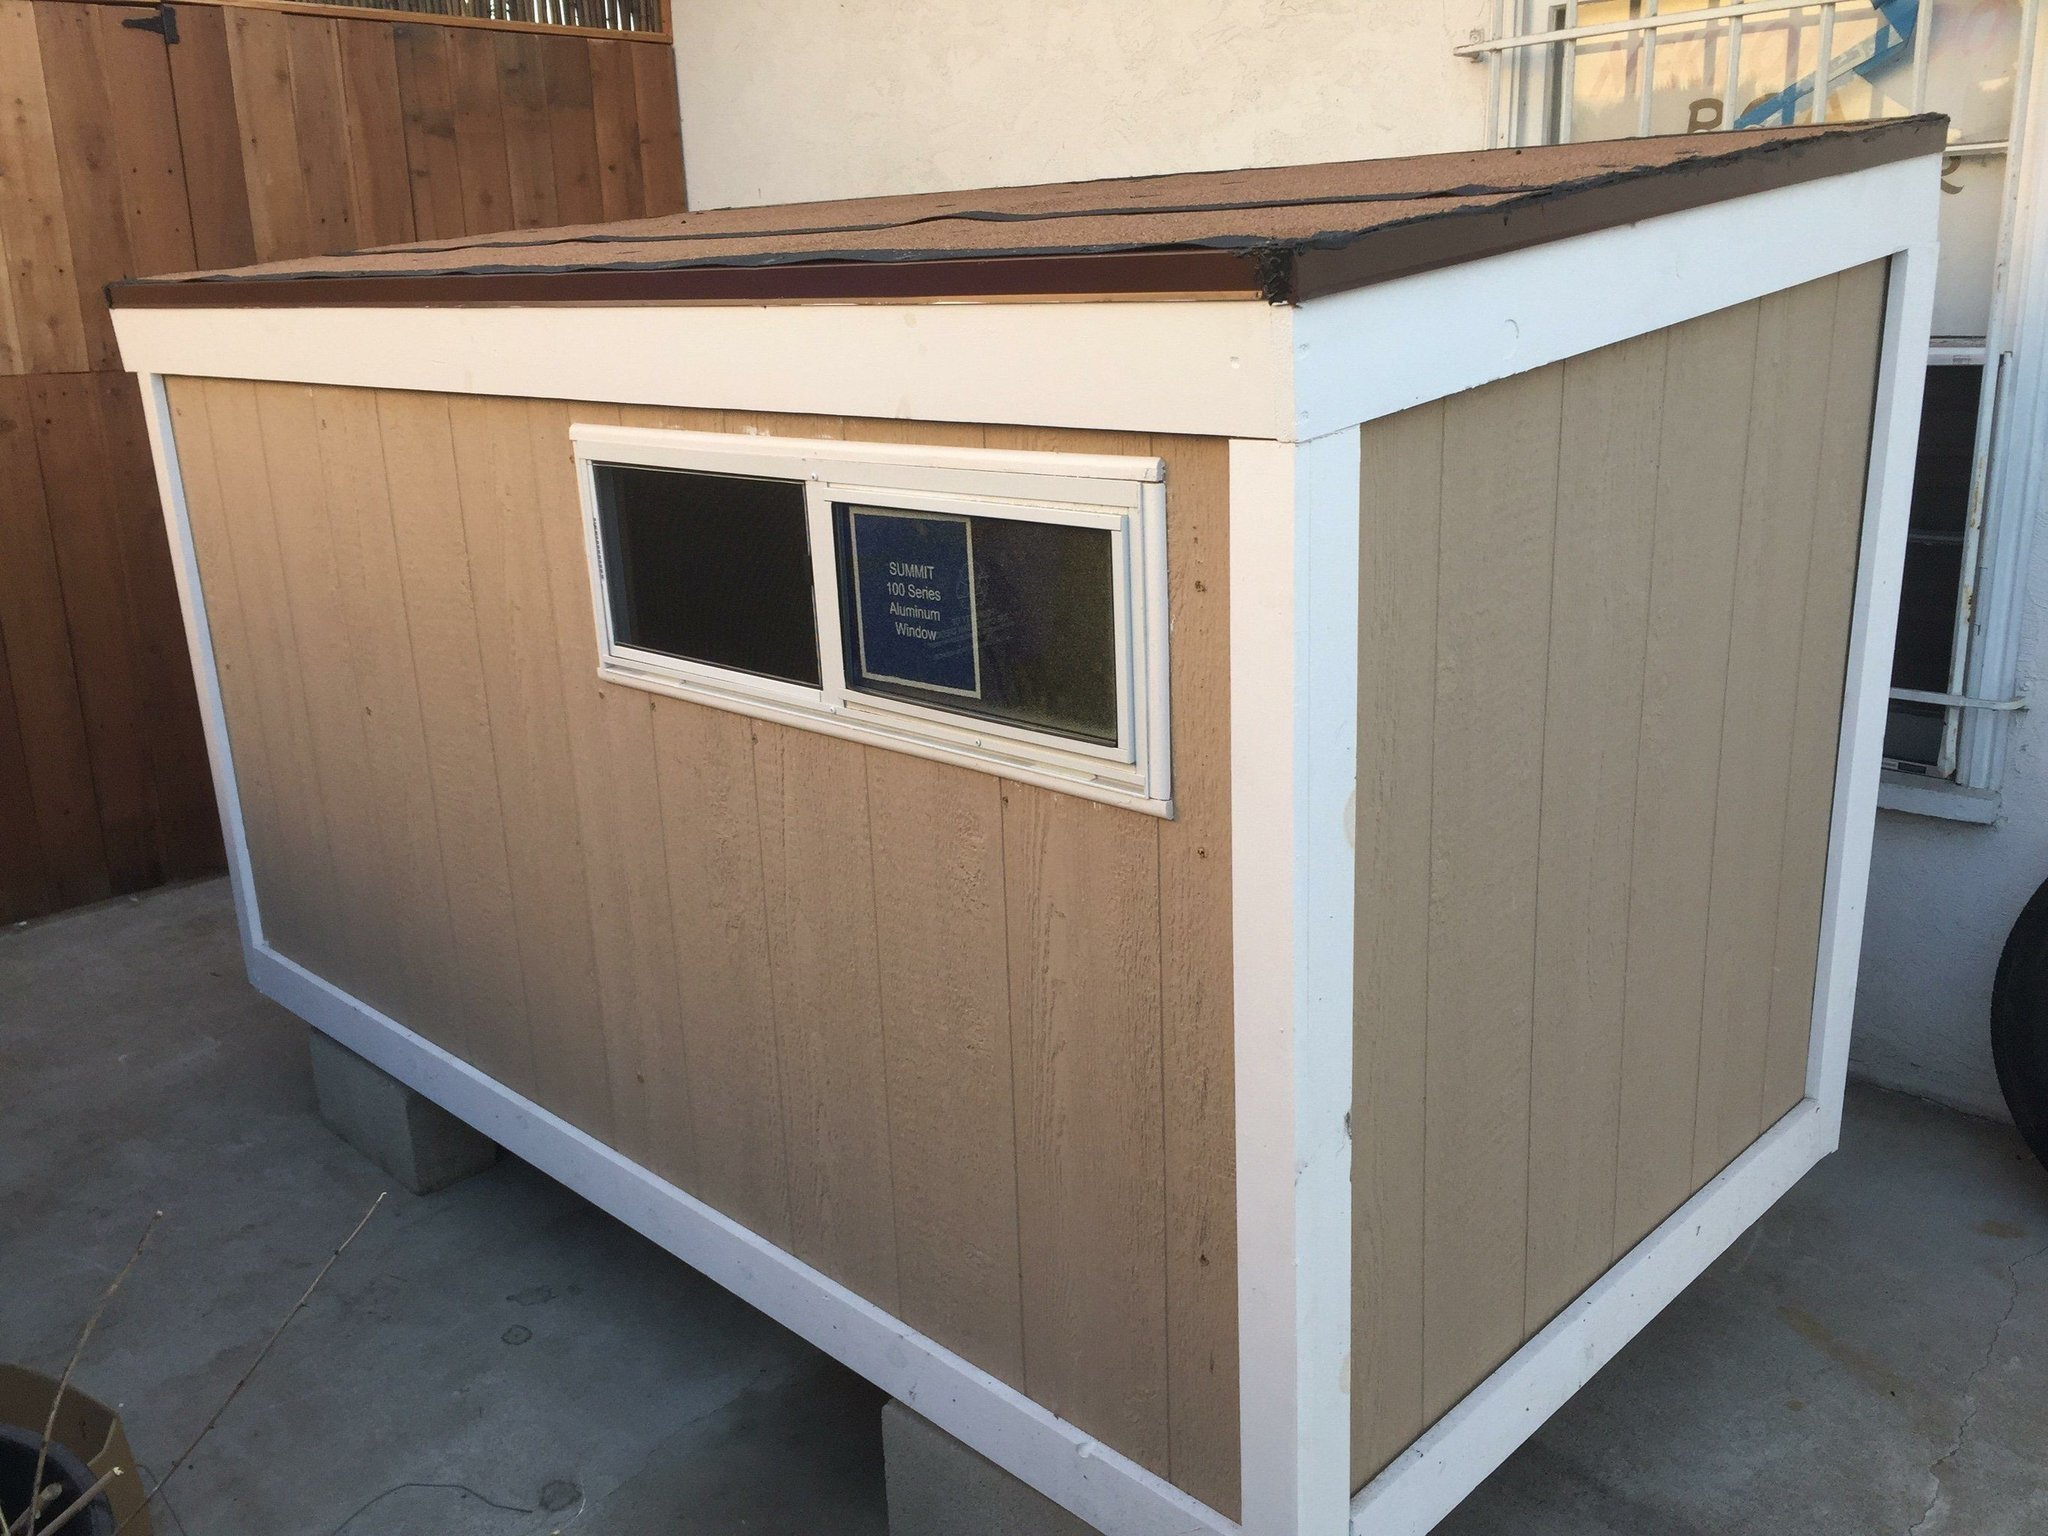 A woman who raised money for a tiny house for a homeless man will